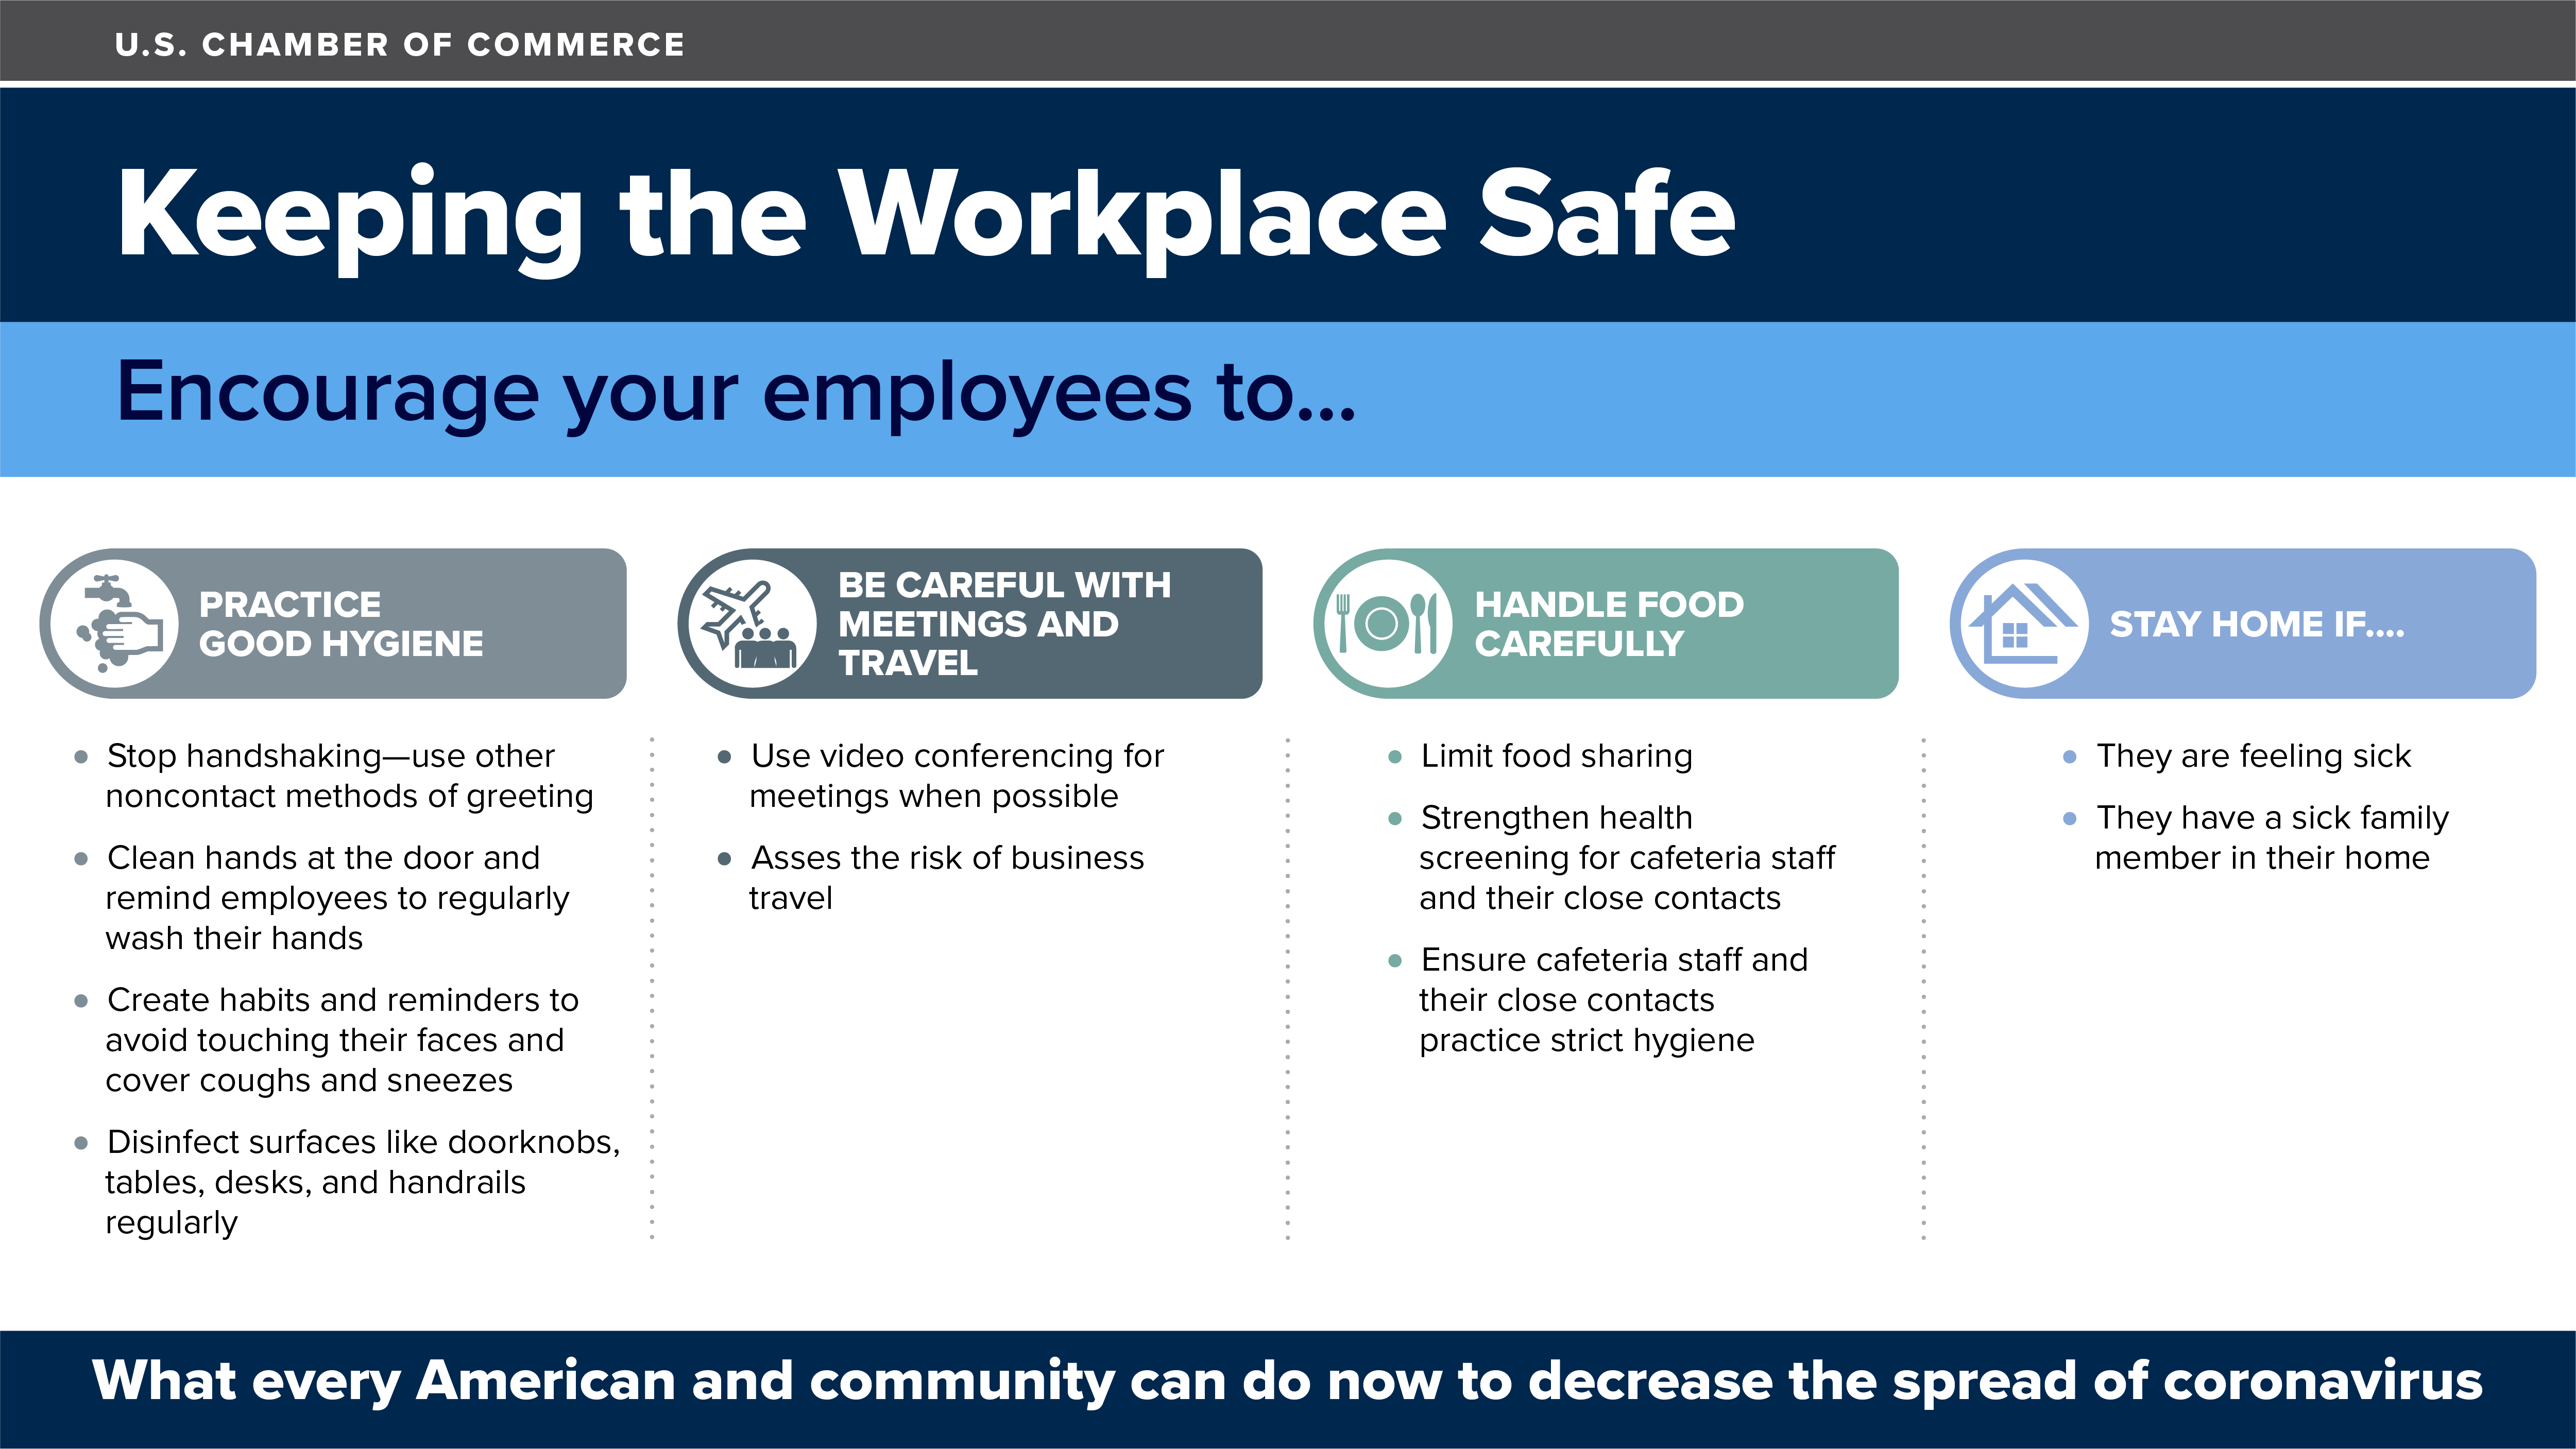 023954_COMMS_ARC_Corona-Virus-Toolkit-TW-1200x675_workplace.png